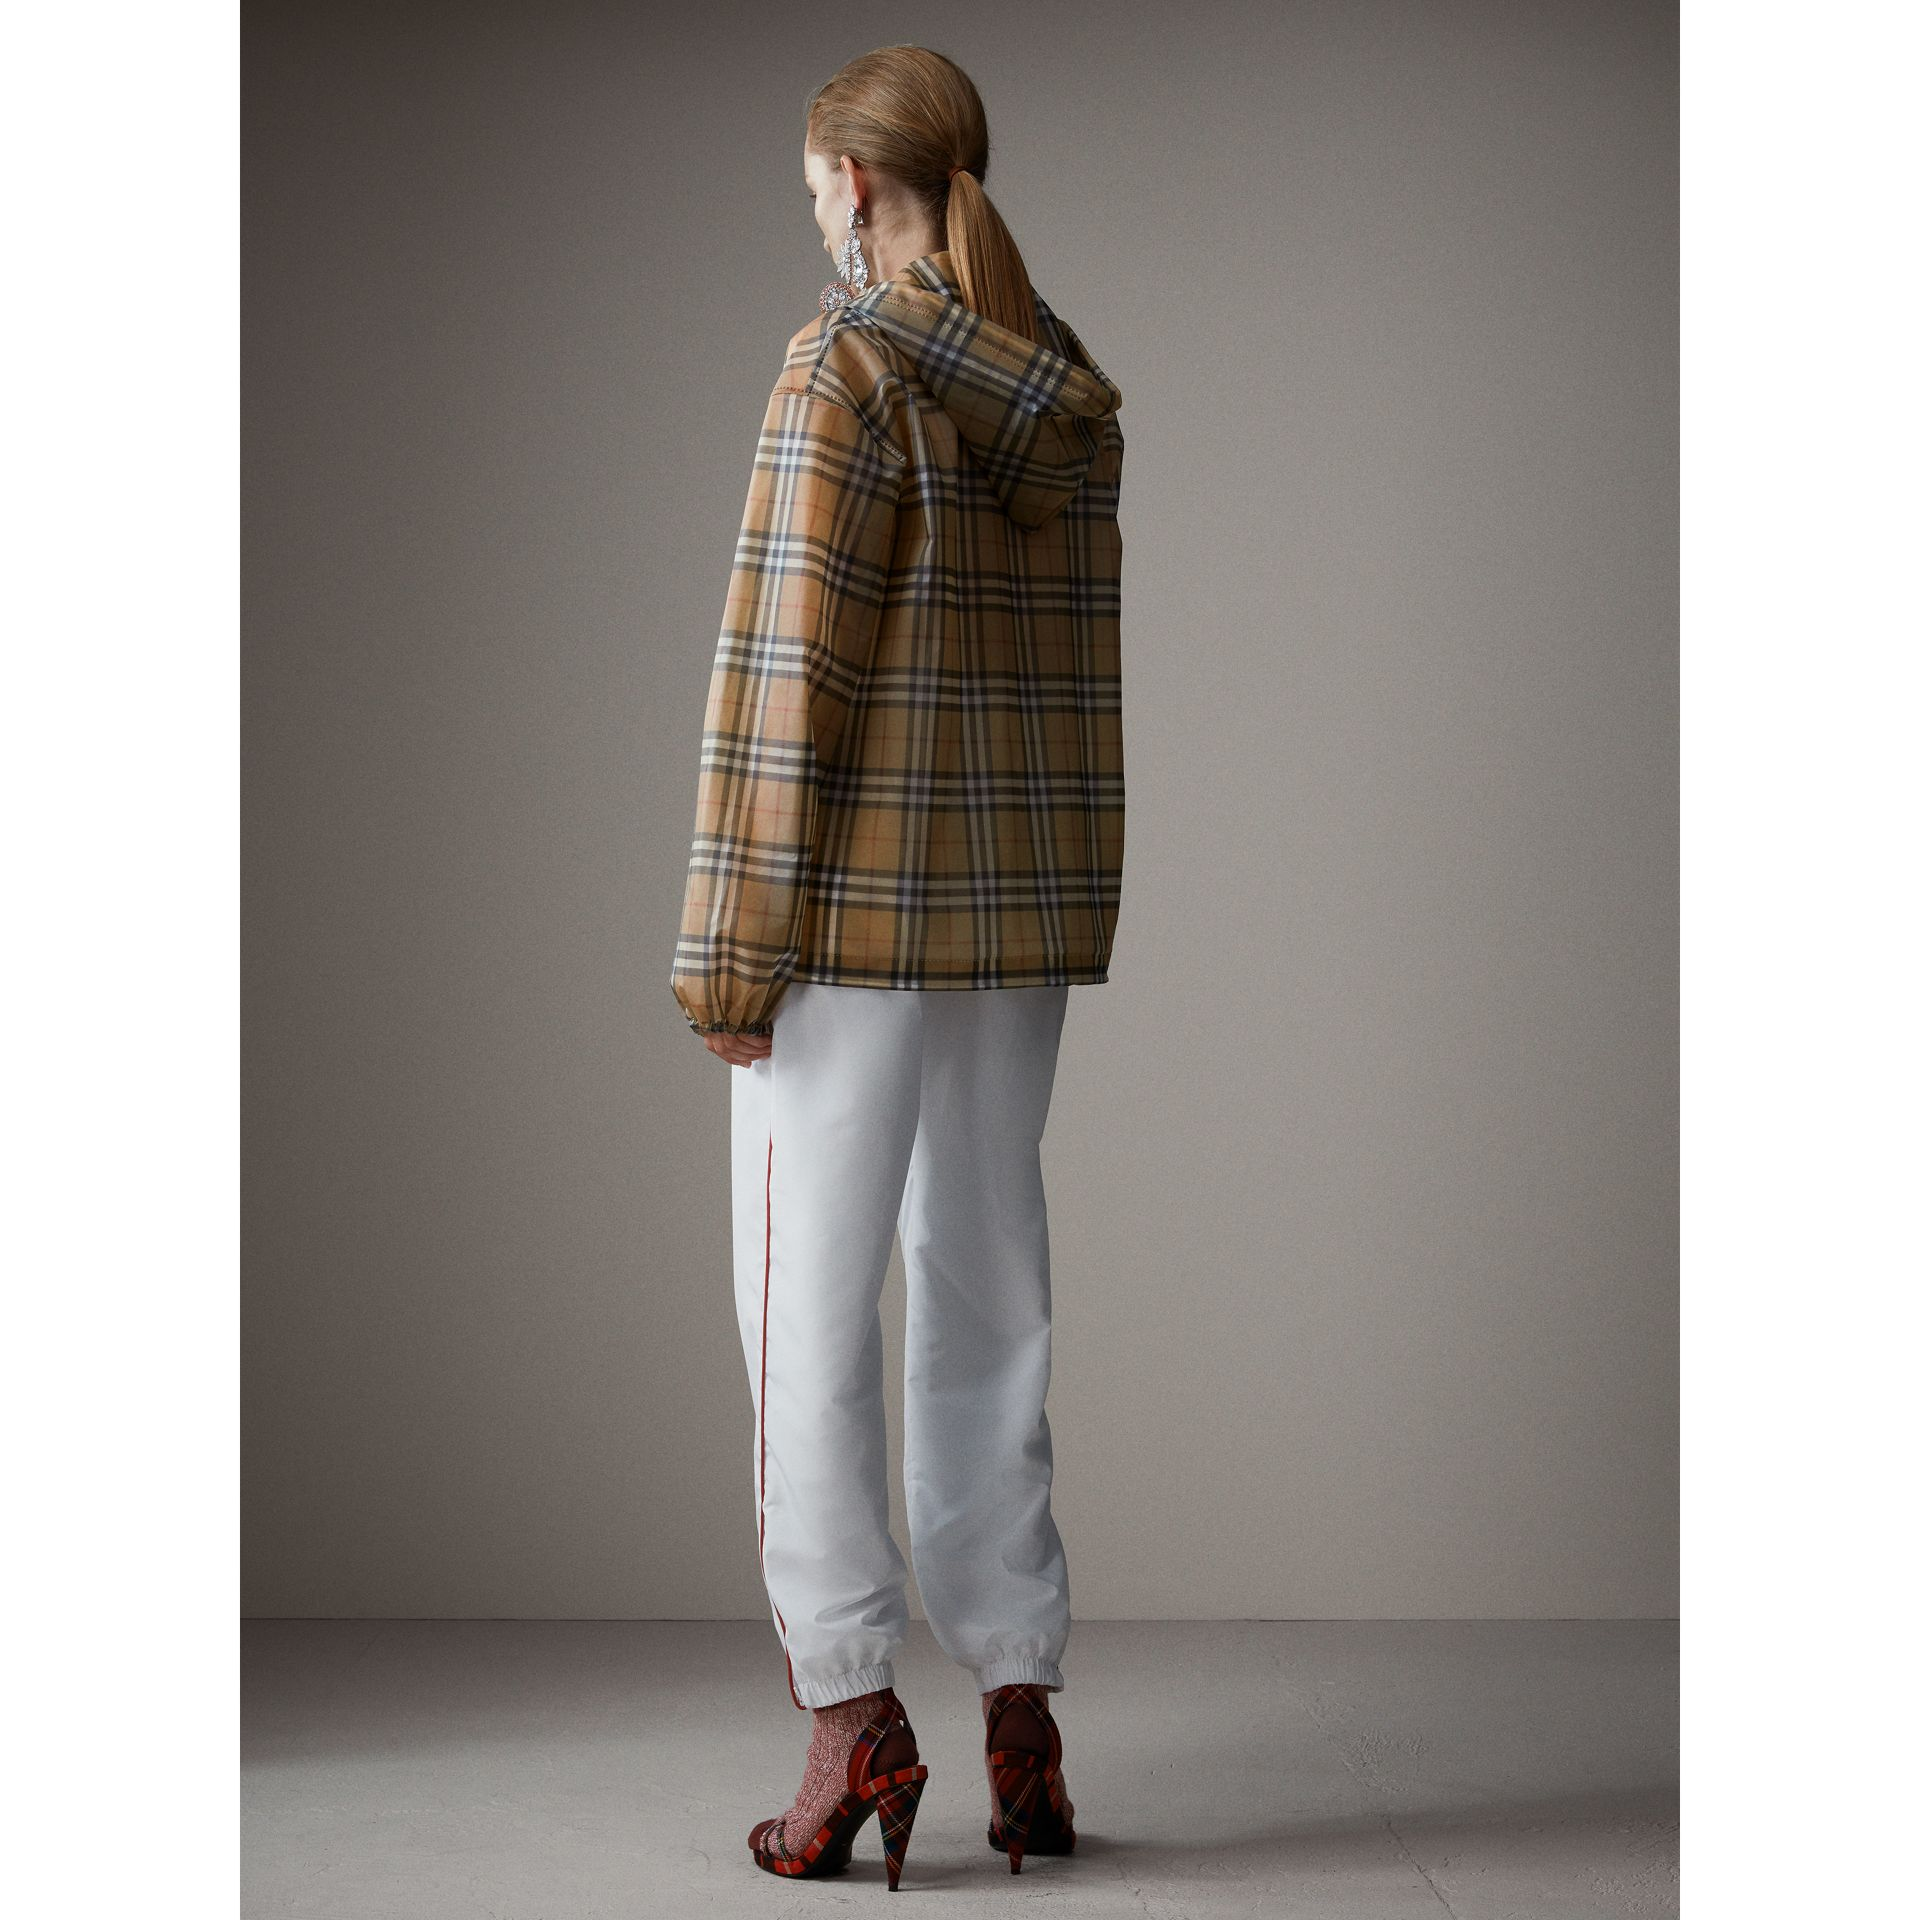 Vintage Check Soft-touch Plastic Cagoule in Antique Yellow - Women | Burberry Canada - gallery image 2